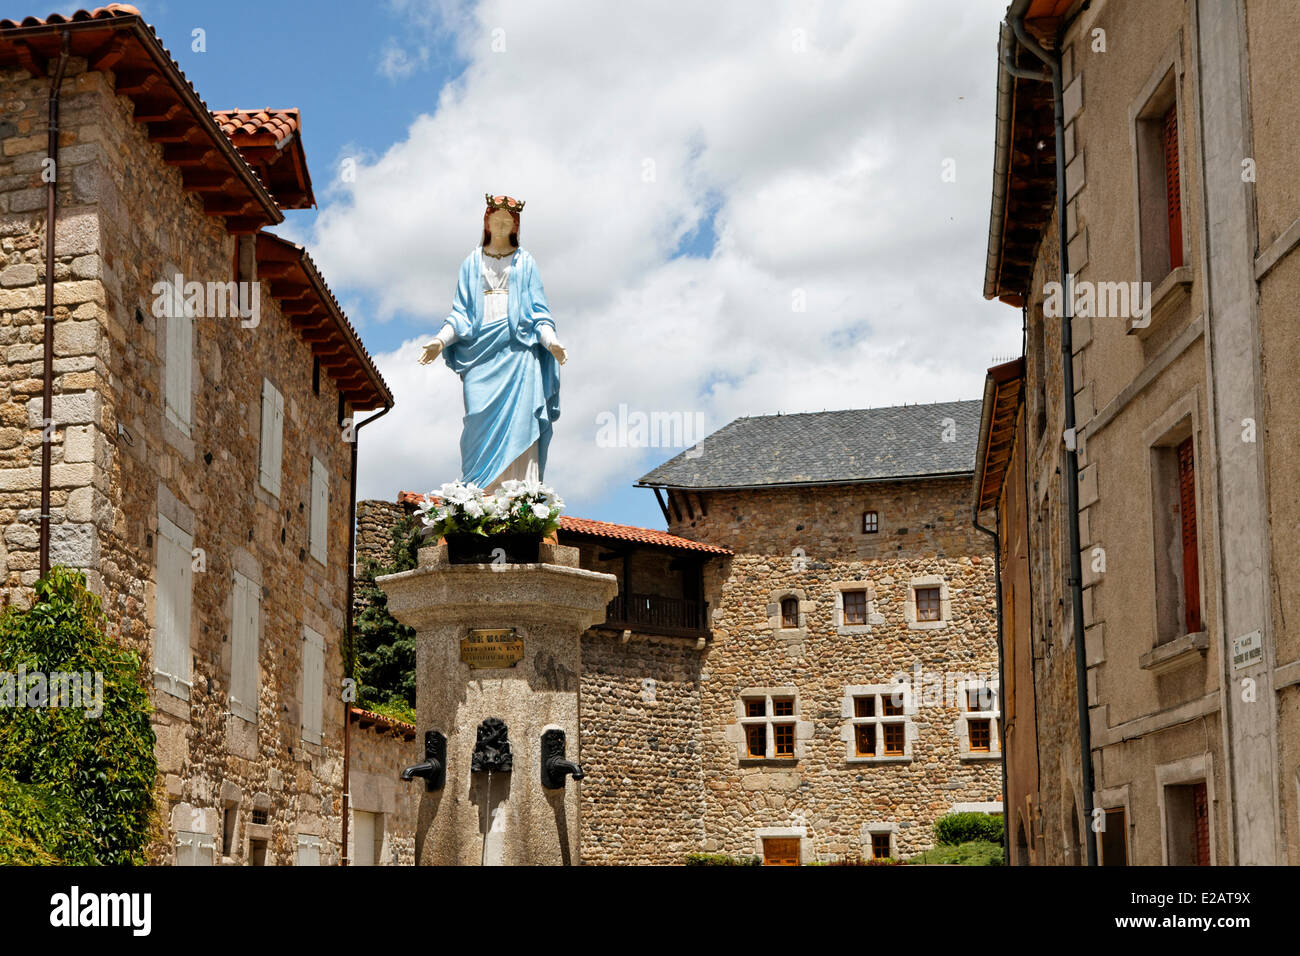 France, Lozere, Le Malzieu Ville, Fountain of the Virgin - Stock Image